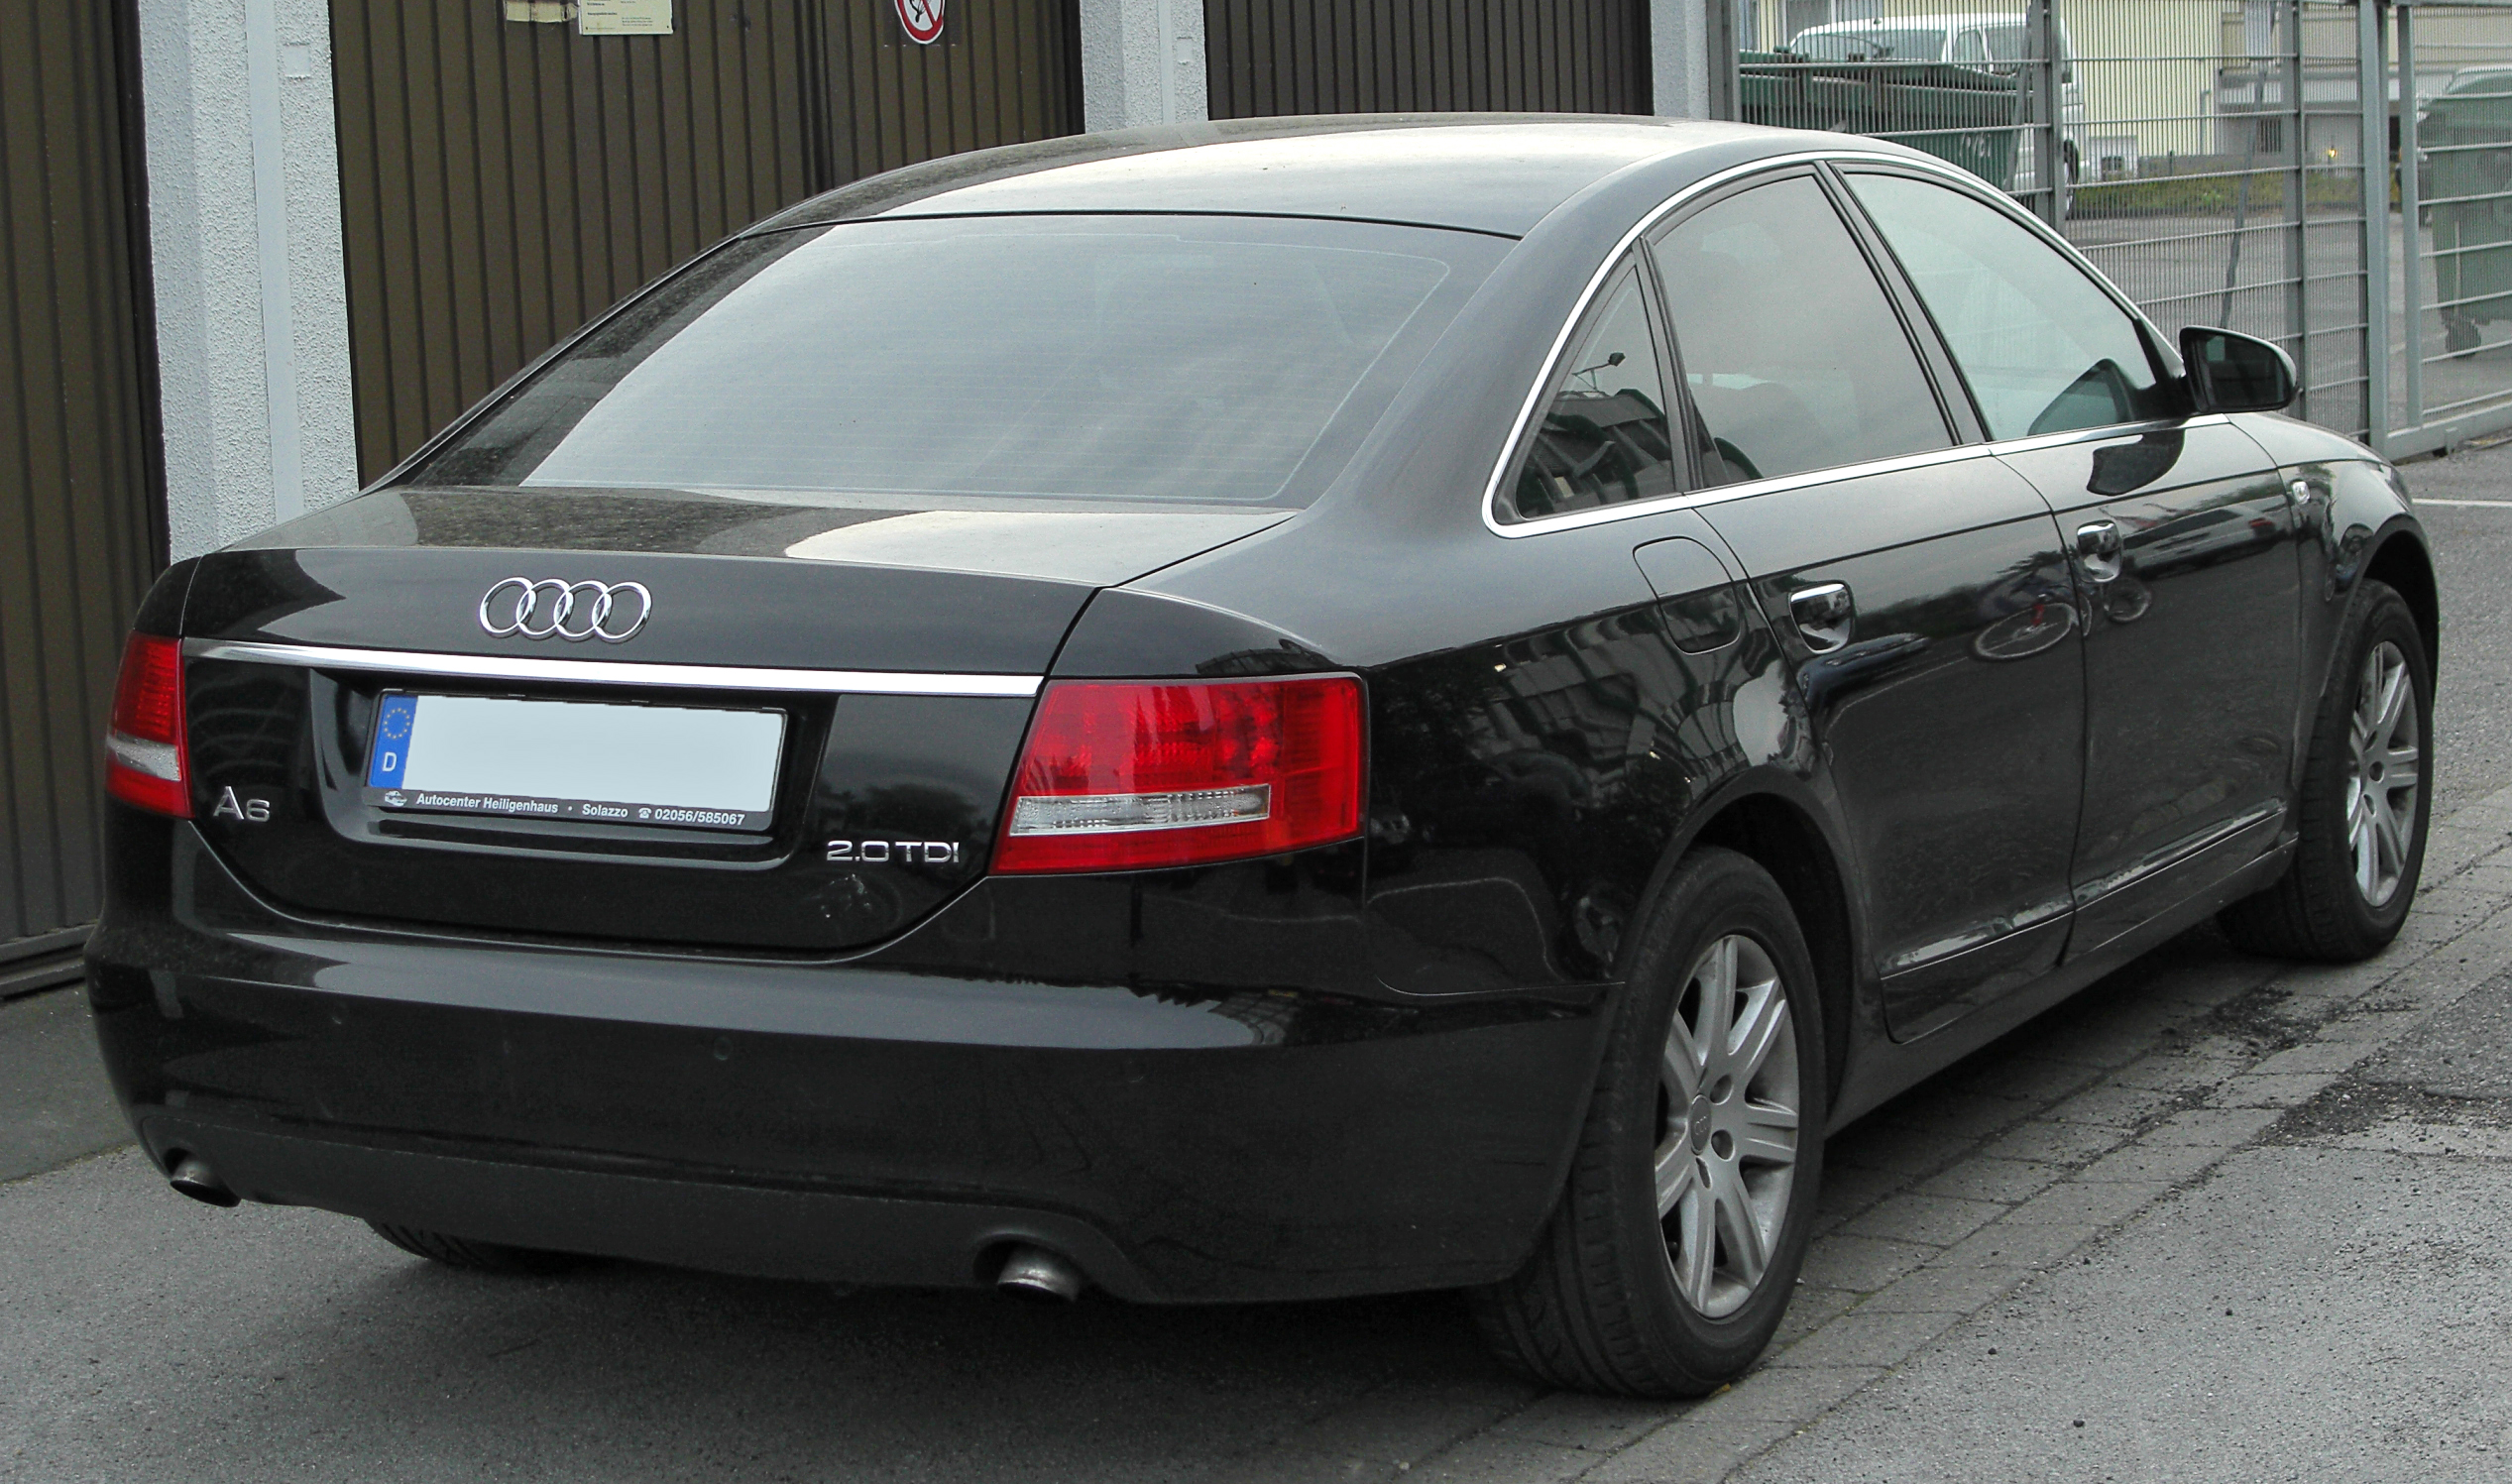 audi a6 2 0 tdi technical details history photos on. Black Bedroom Furniture Sets. Home Design Ideas